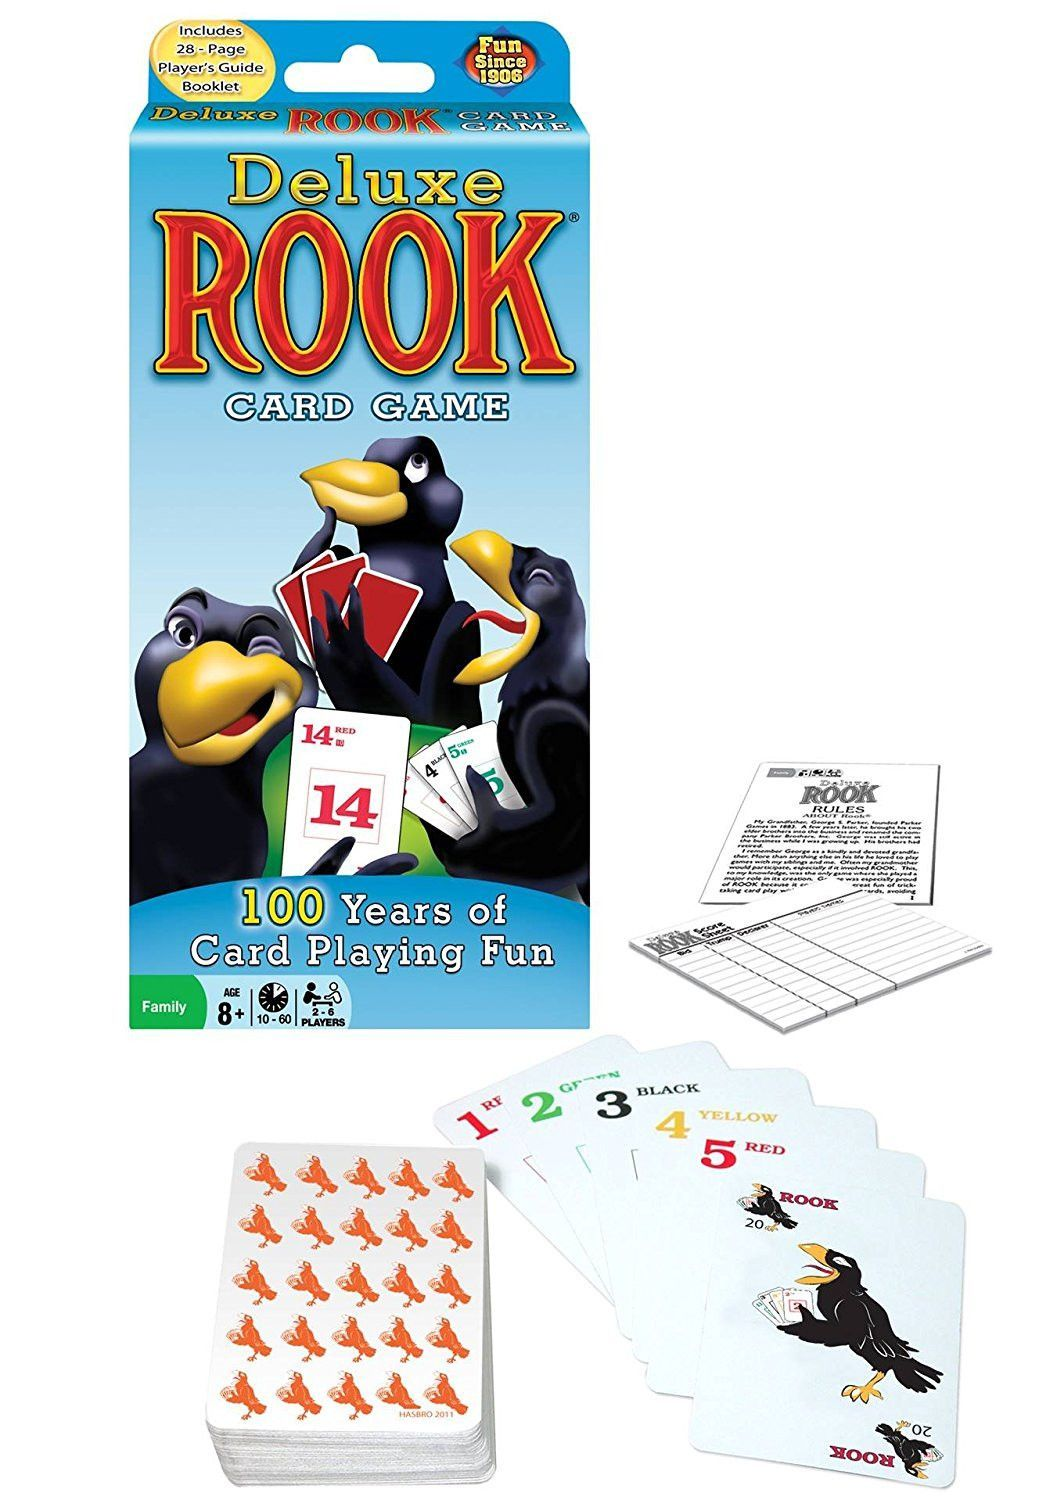 Deluxe Rook Rook card game, Card games, Games to play